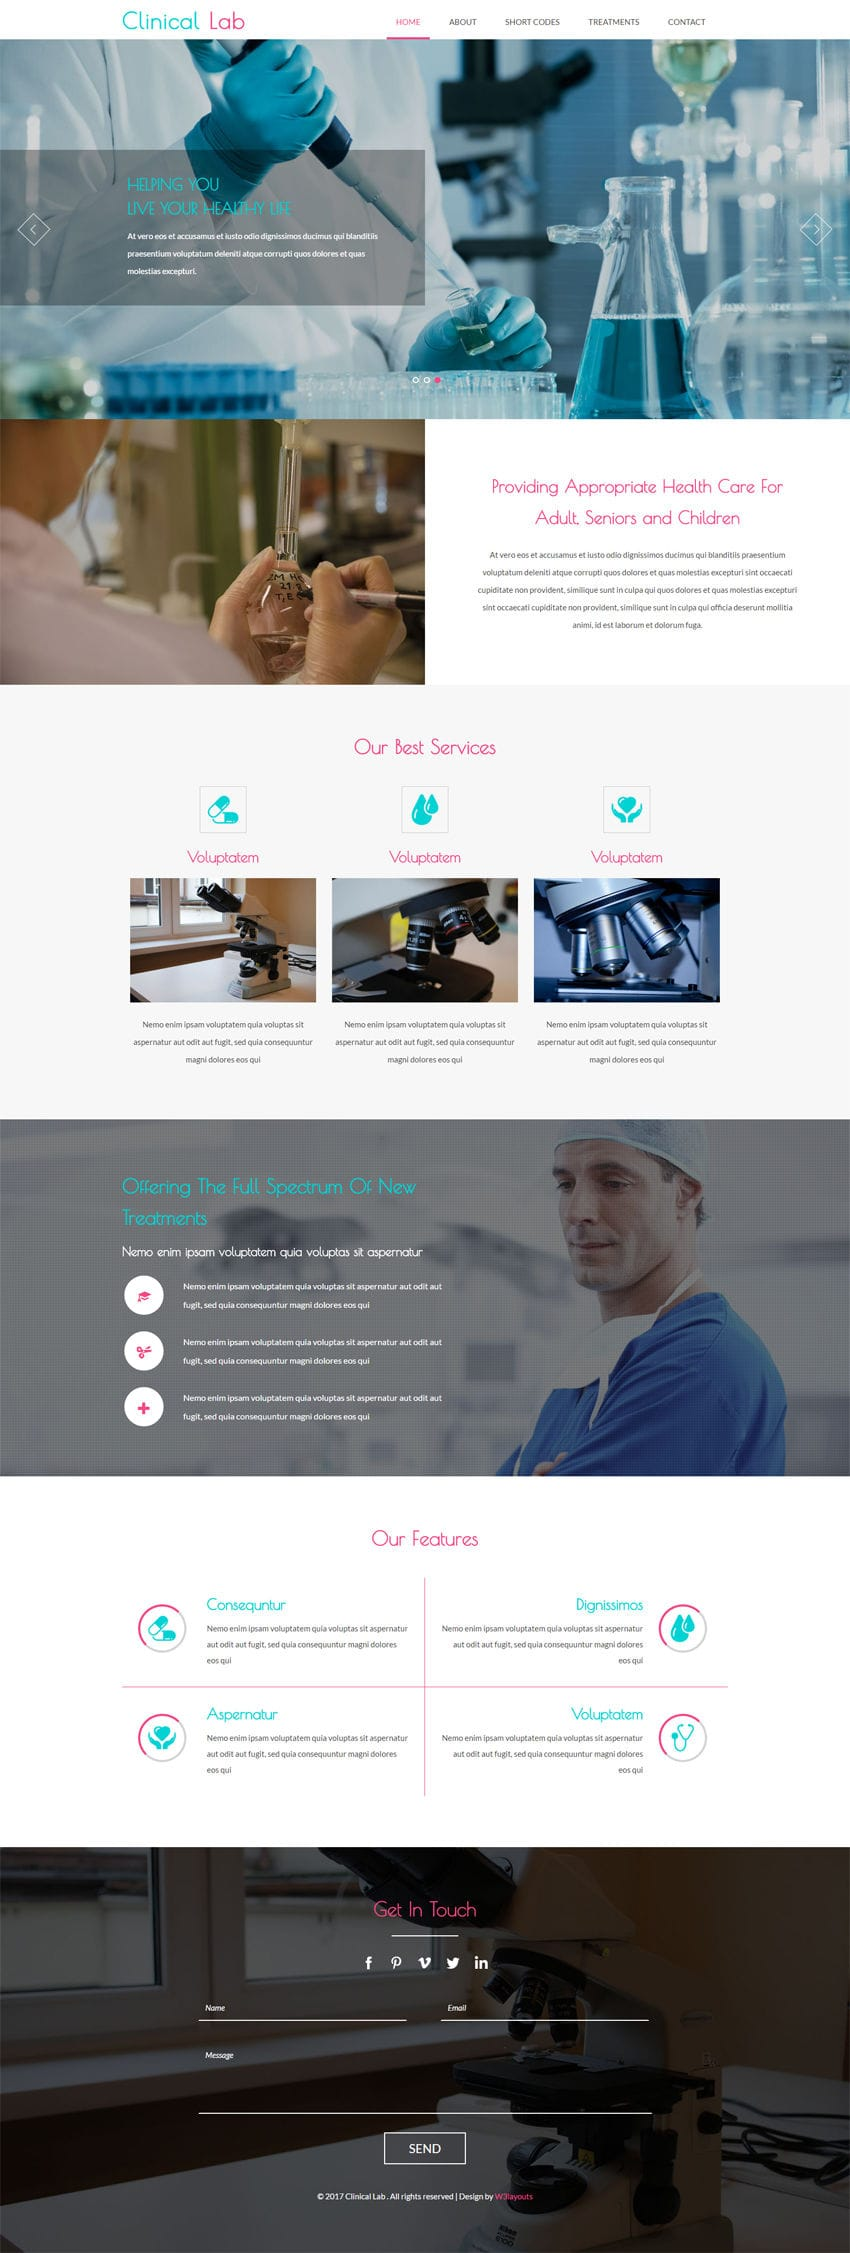 Clinical Lab a Medical Category Flat Bootstrap Responsive